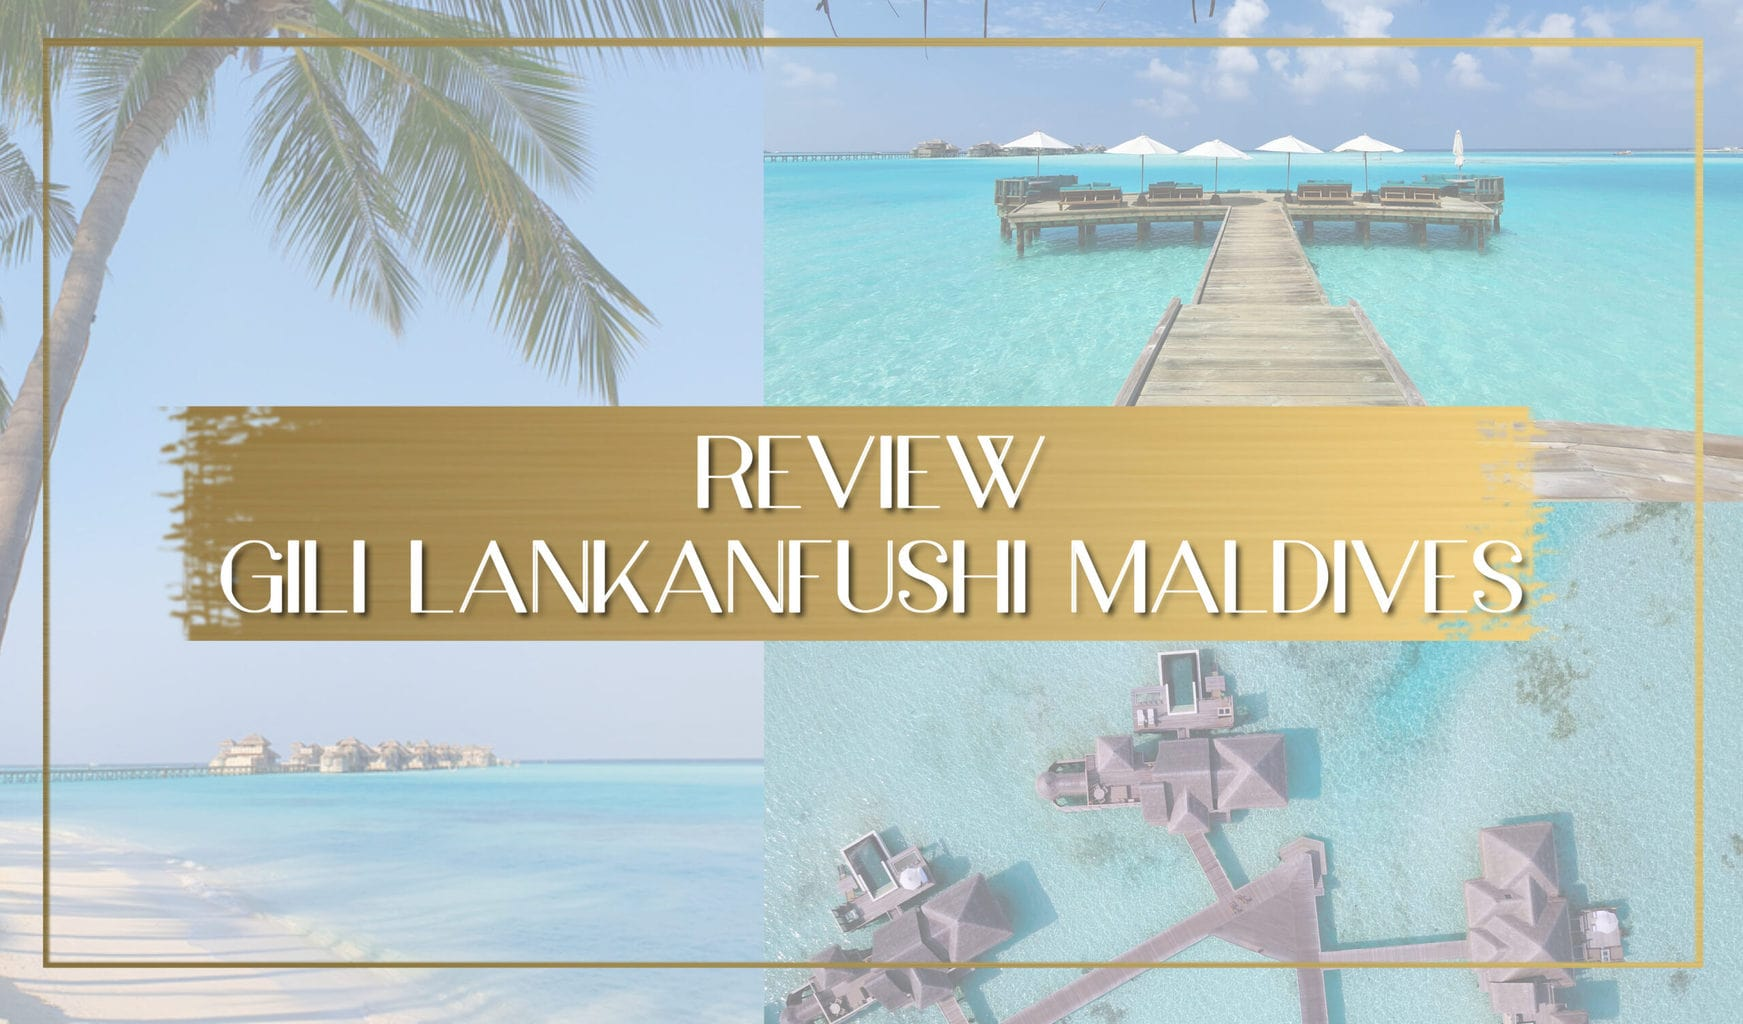 Gili Lankanfushi Maldives review main